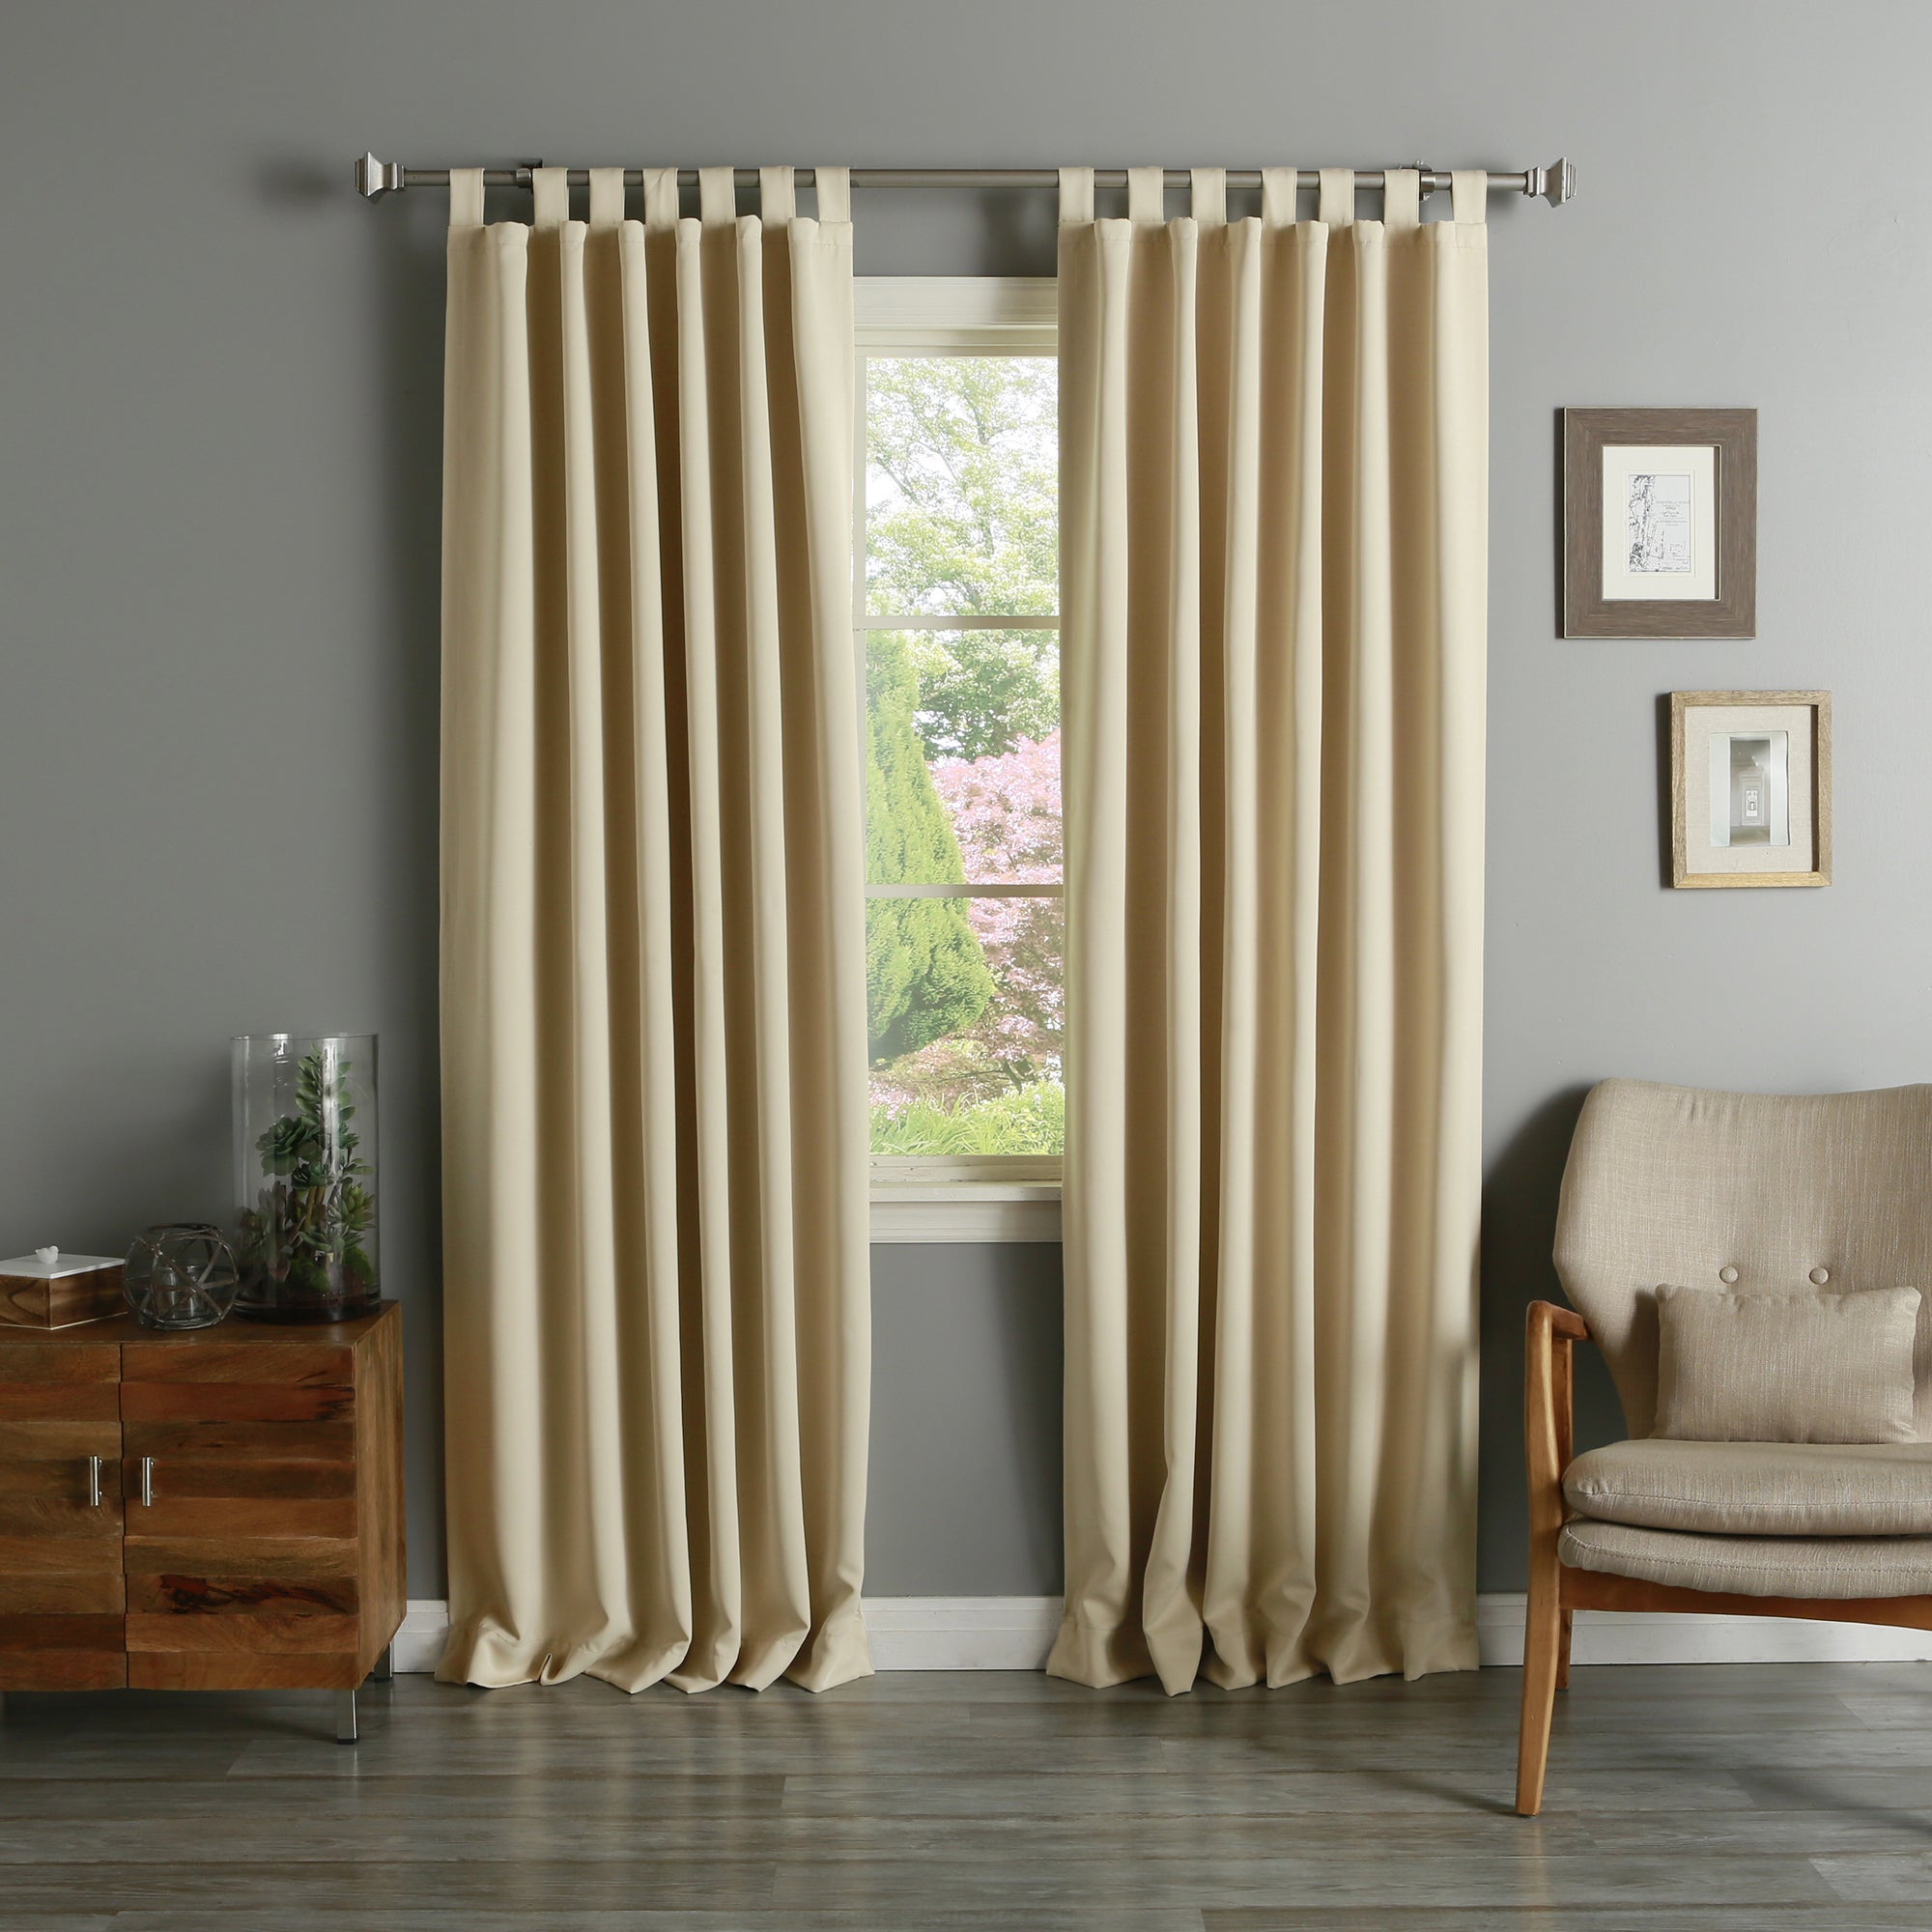 Aurora Home Tab Top Thermal Insulated 95 Inch Blackout Curtain Panel Pair – 52 X 95 Pertaining To Insulated Thermal Blackout Curtain Panel Pairs (View 7 of 20)